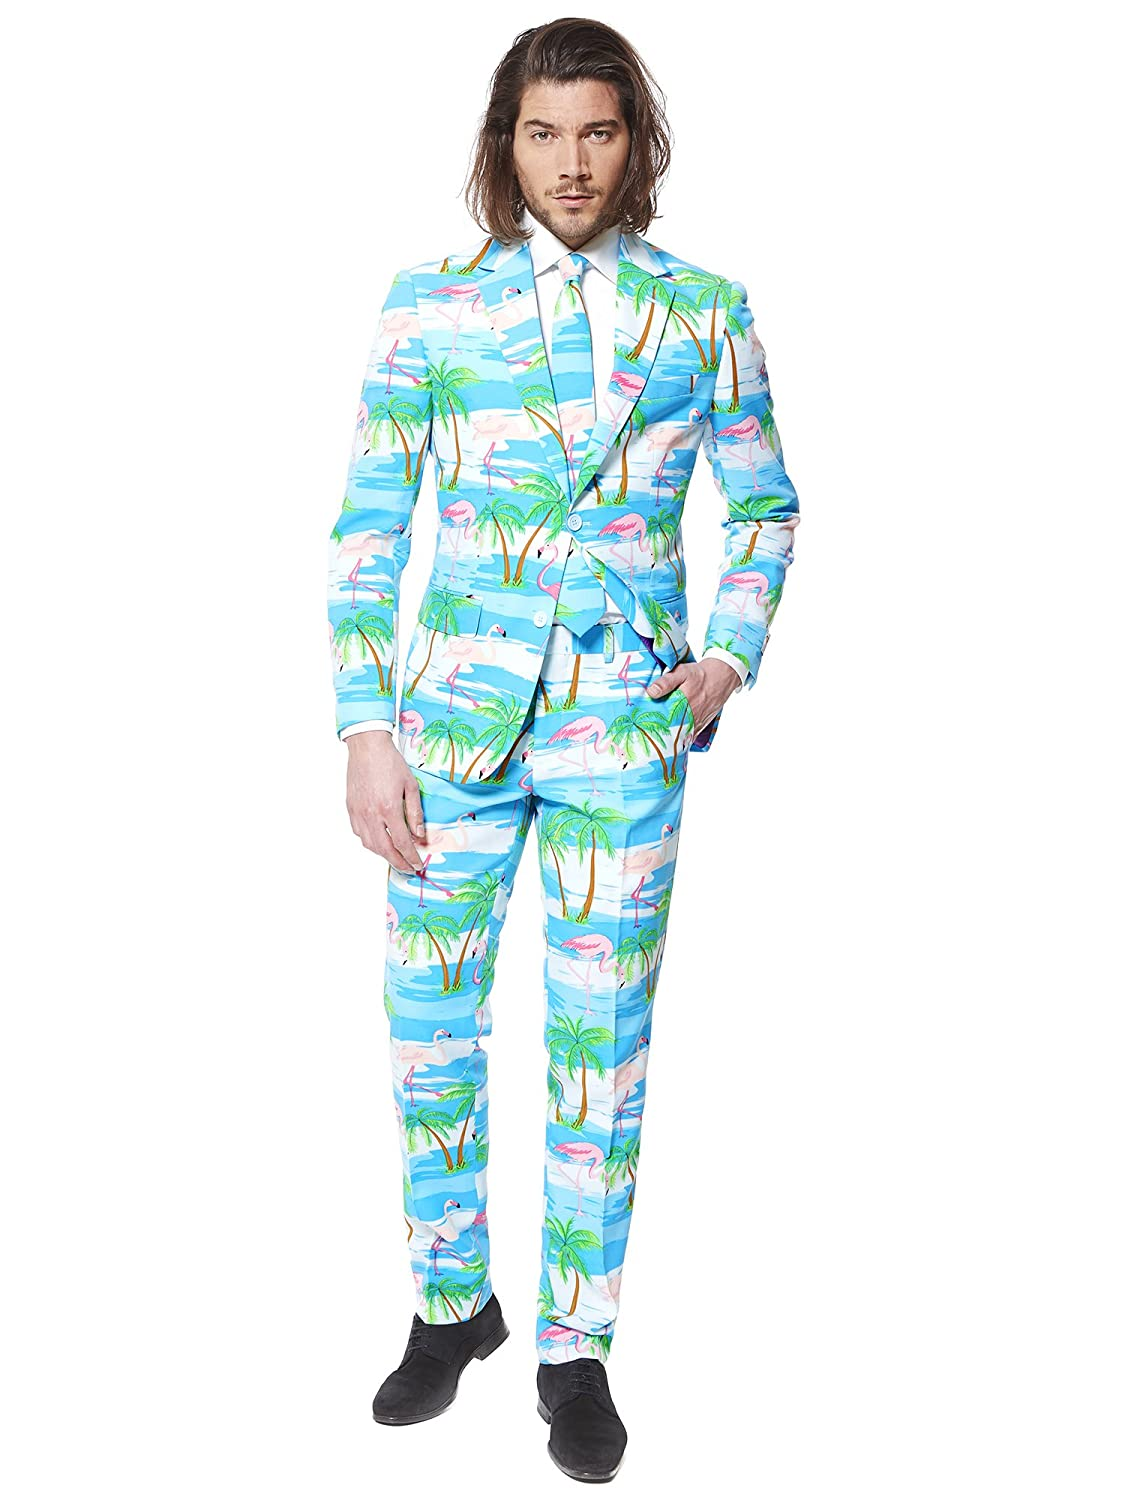 ... Flaminguy Suit for Men Comes with Jacket, Pants and Tie in Funny Flamingos and Palm Trees Print - 100% Money Back Guarantee: Amazon.co.uk: Clothing